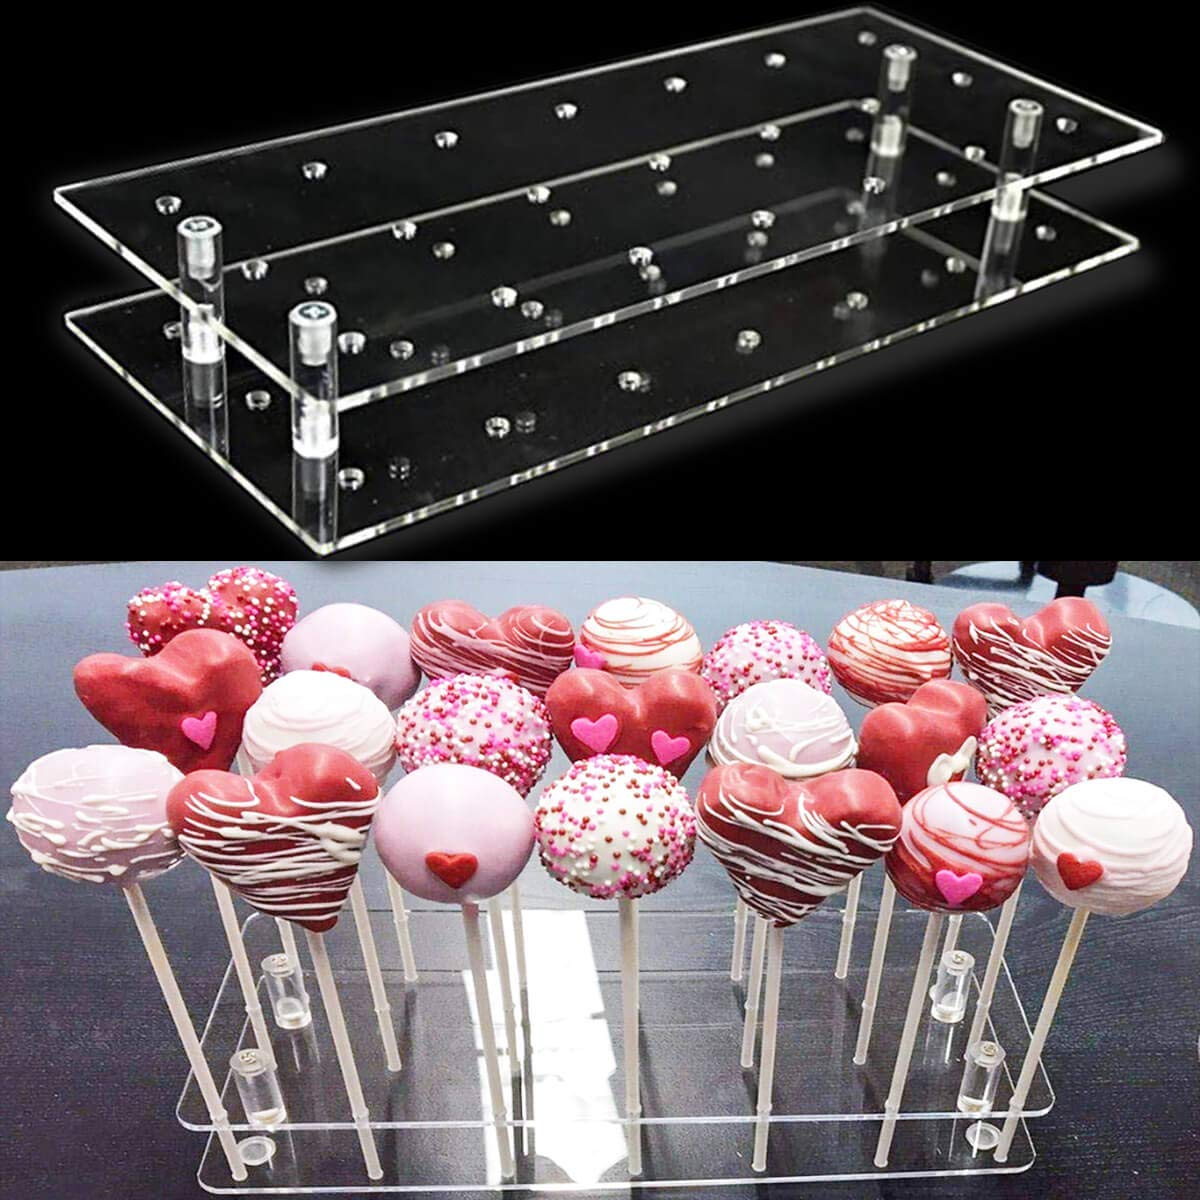 Goabroa Cake Pop Display Stand, 21 Hole Clear Acrylic Lollipop Holder Weddings Baby Showers Birthday Parties Anniversaries Halloween Candy Decorative (21 Hole)